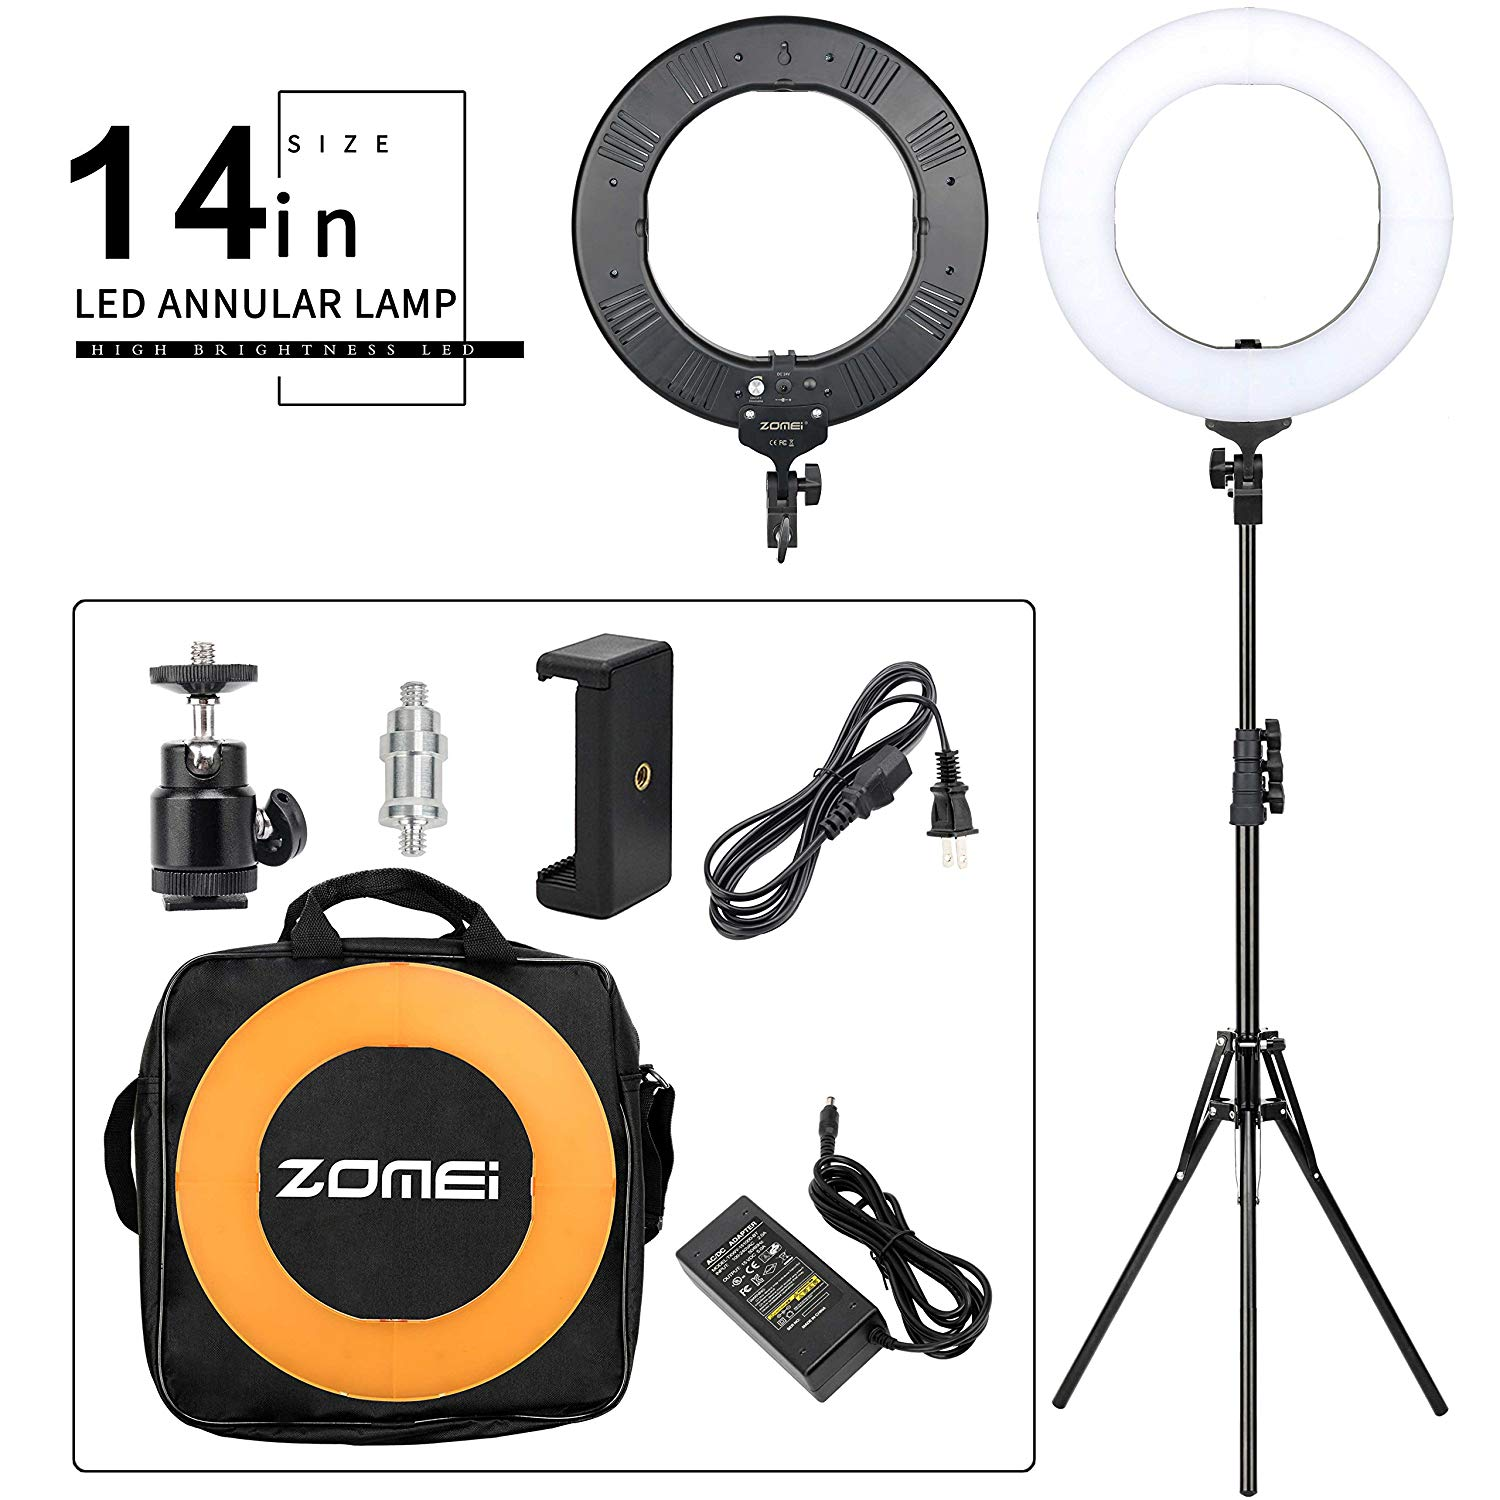 Zomei 14-inch LED Ring Light Kit Dimmable 41W 5500K with One-Piece Warm Color Filter Heavy Duty Light Stand Phone Holder for Makeup YouTube Video